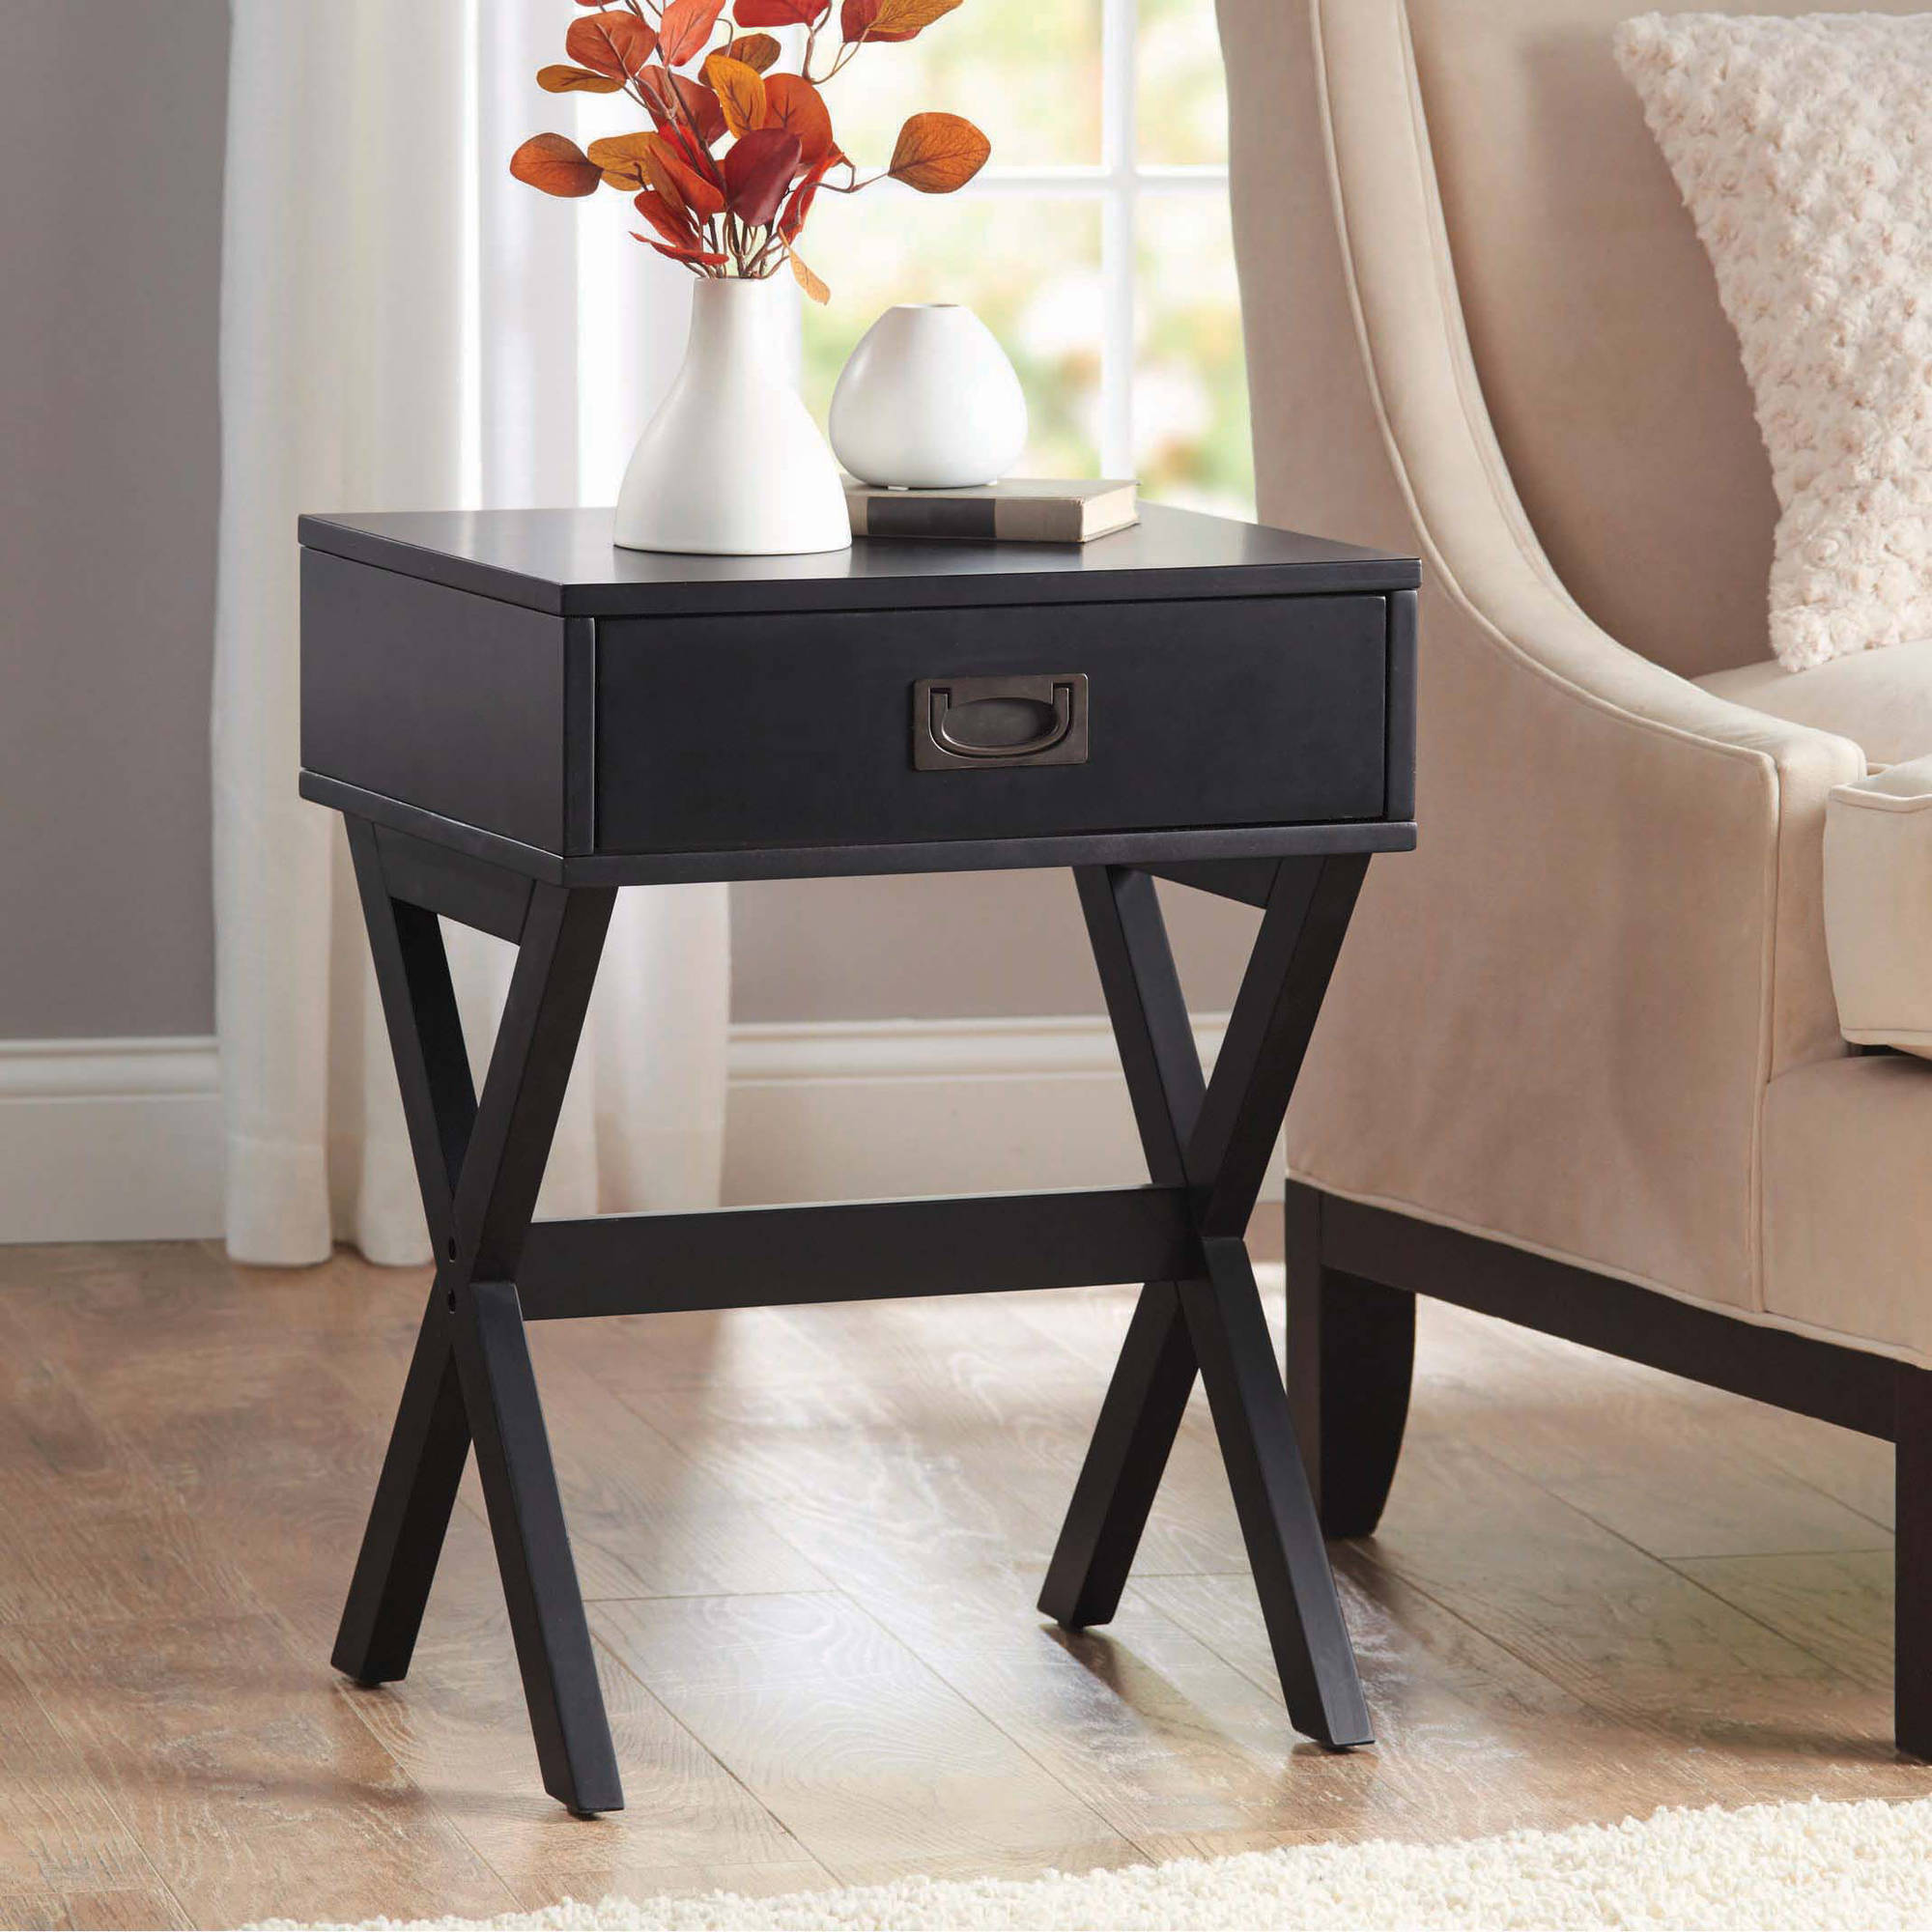 better homes gardens leg accent table with drawer multiple room essentials instructions colors round pedestal entry ikea lounge storage patio furniture covers small folding side